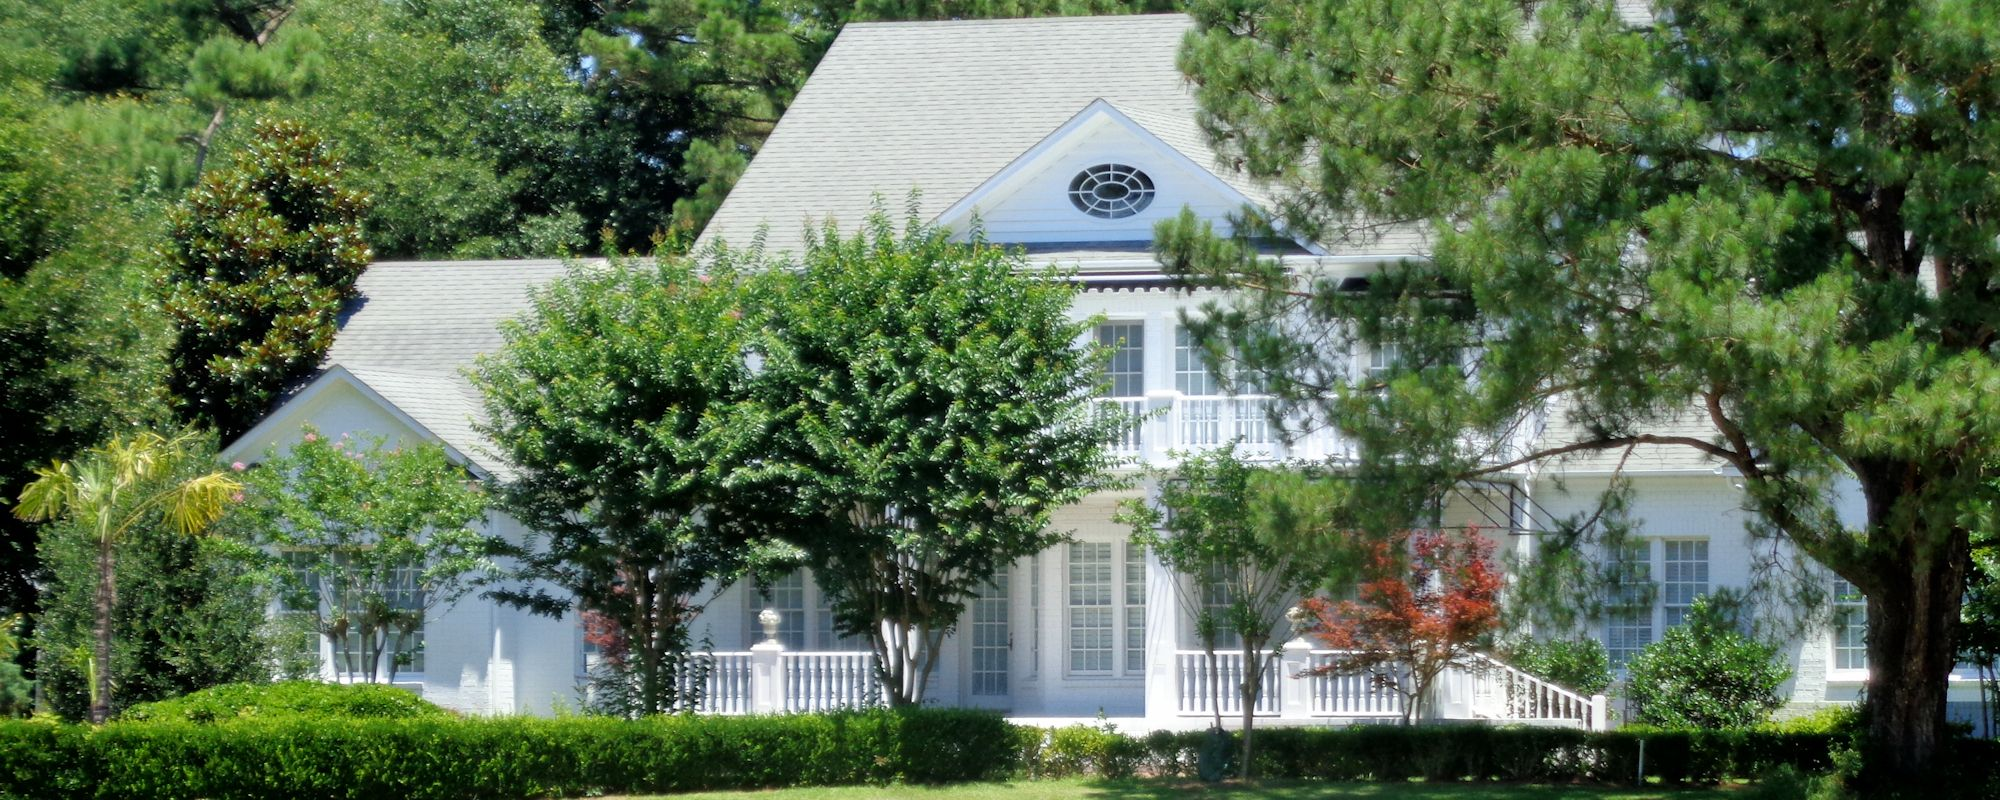 Luxury Neighborhoods - Communities - Porters Neck Plantation